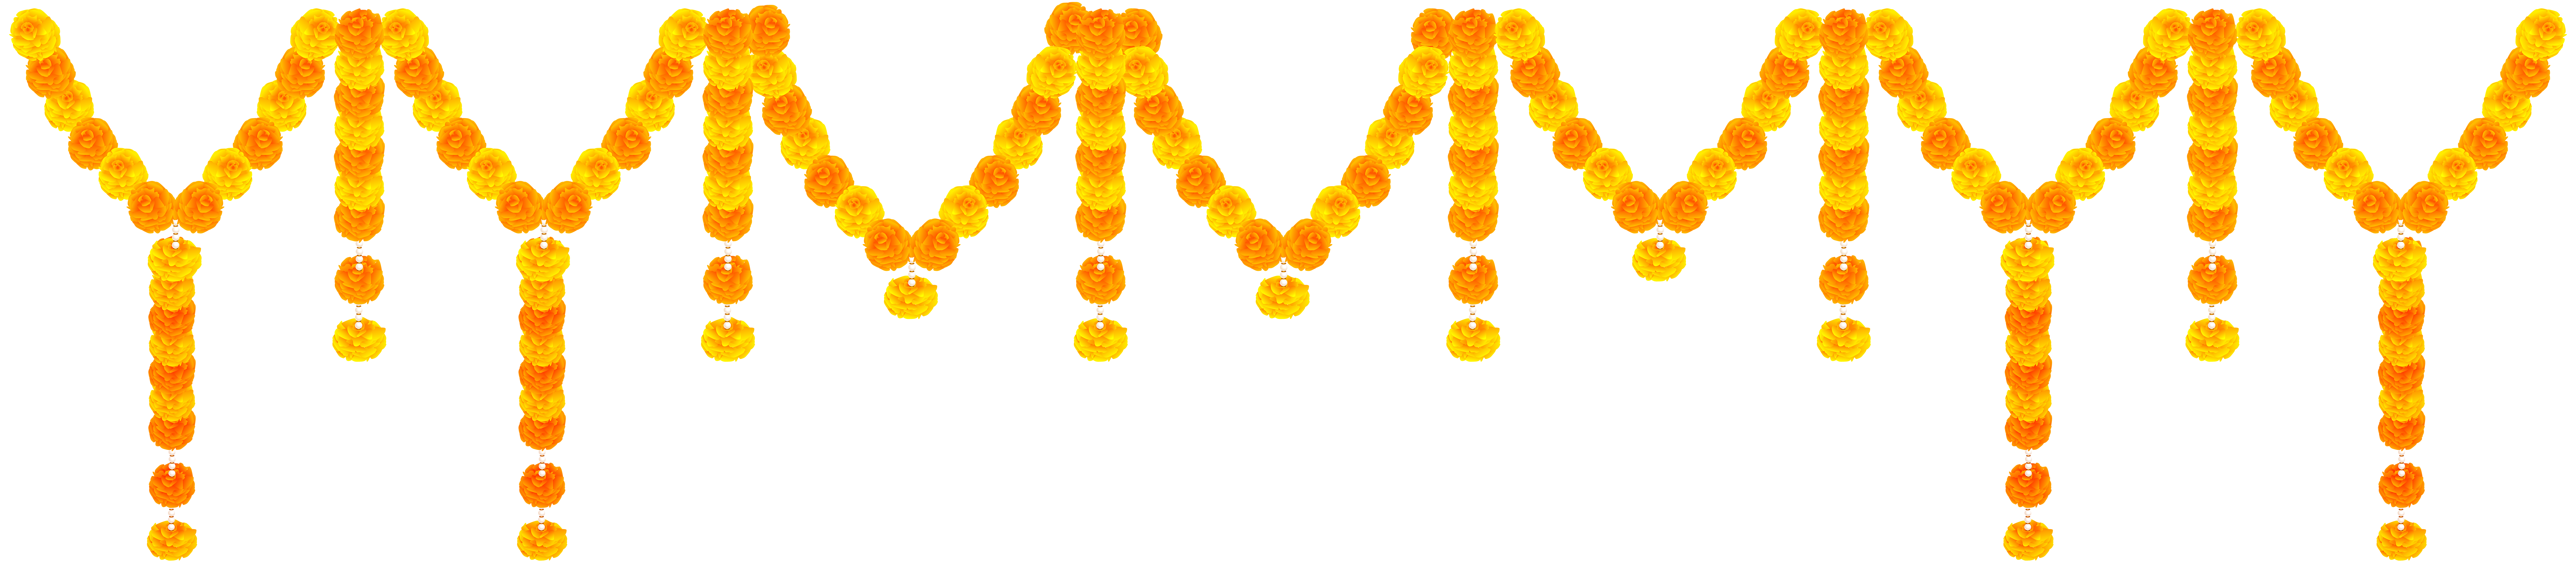 Flower garland png. India transparent clip art